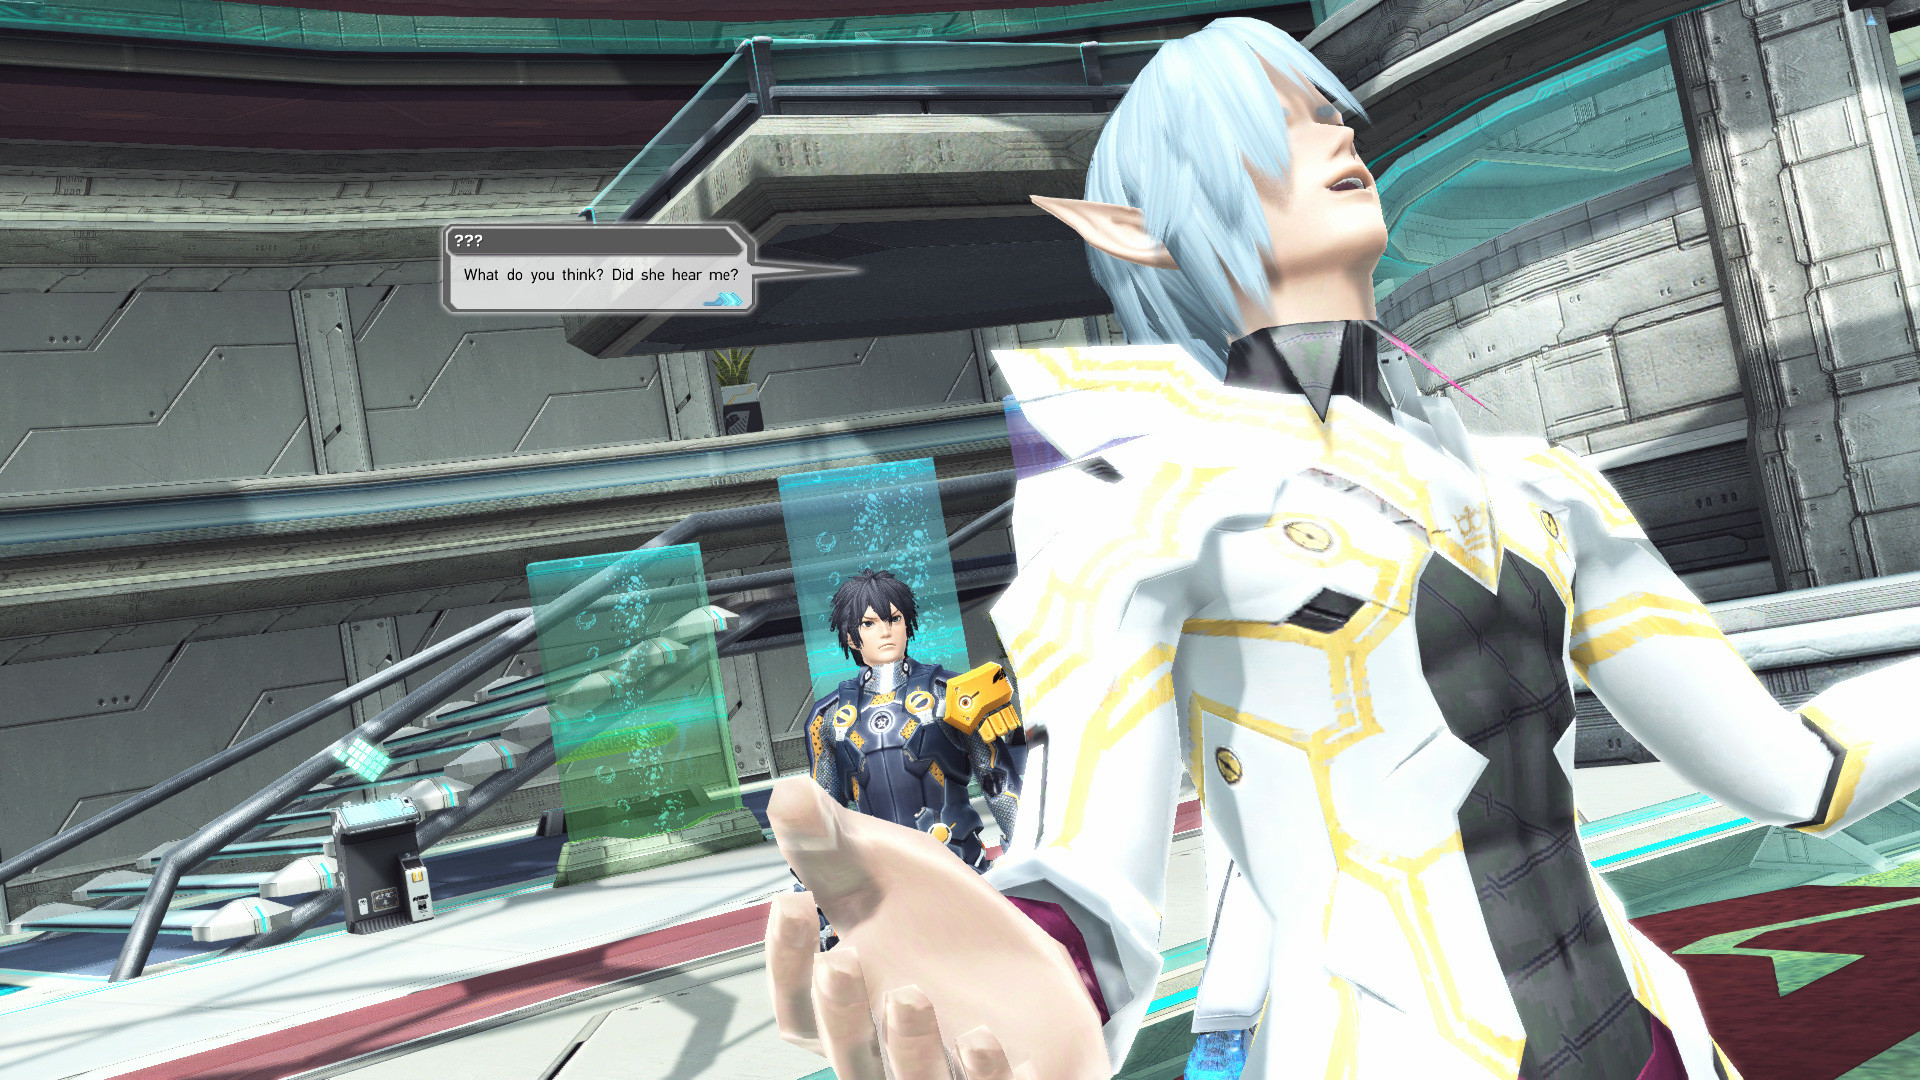 Phantasy Star Online 2 seems to be coming to Steam very soon, in case you hated the Windows launcher screenshot